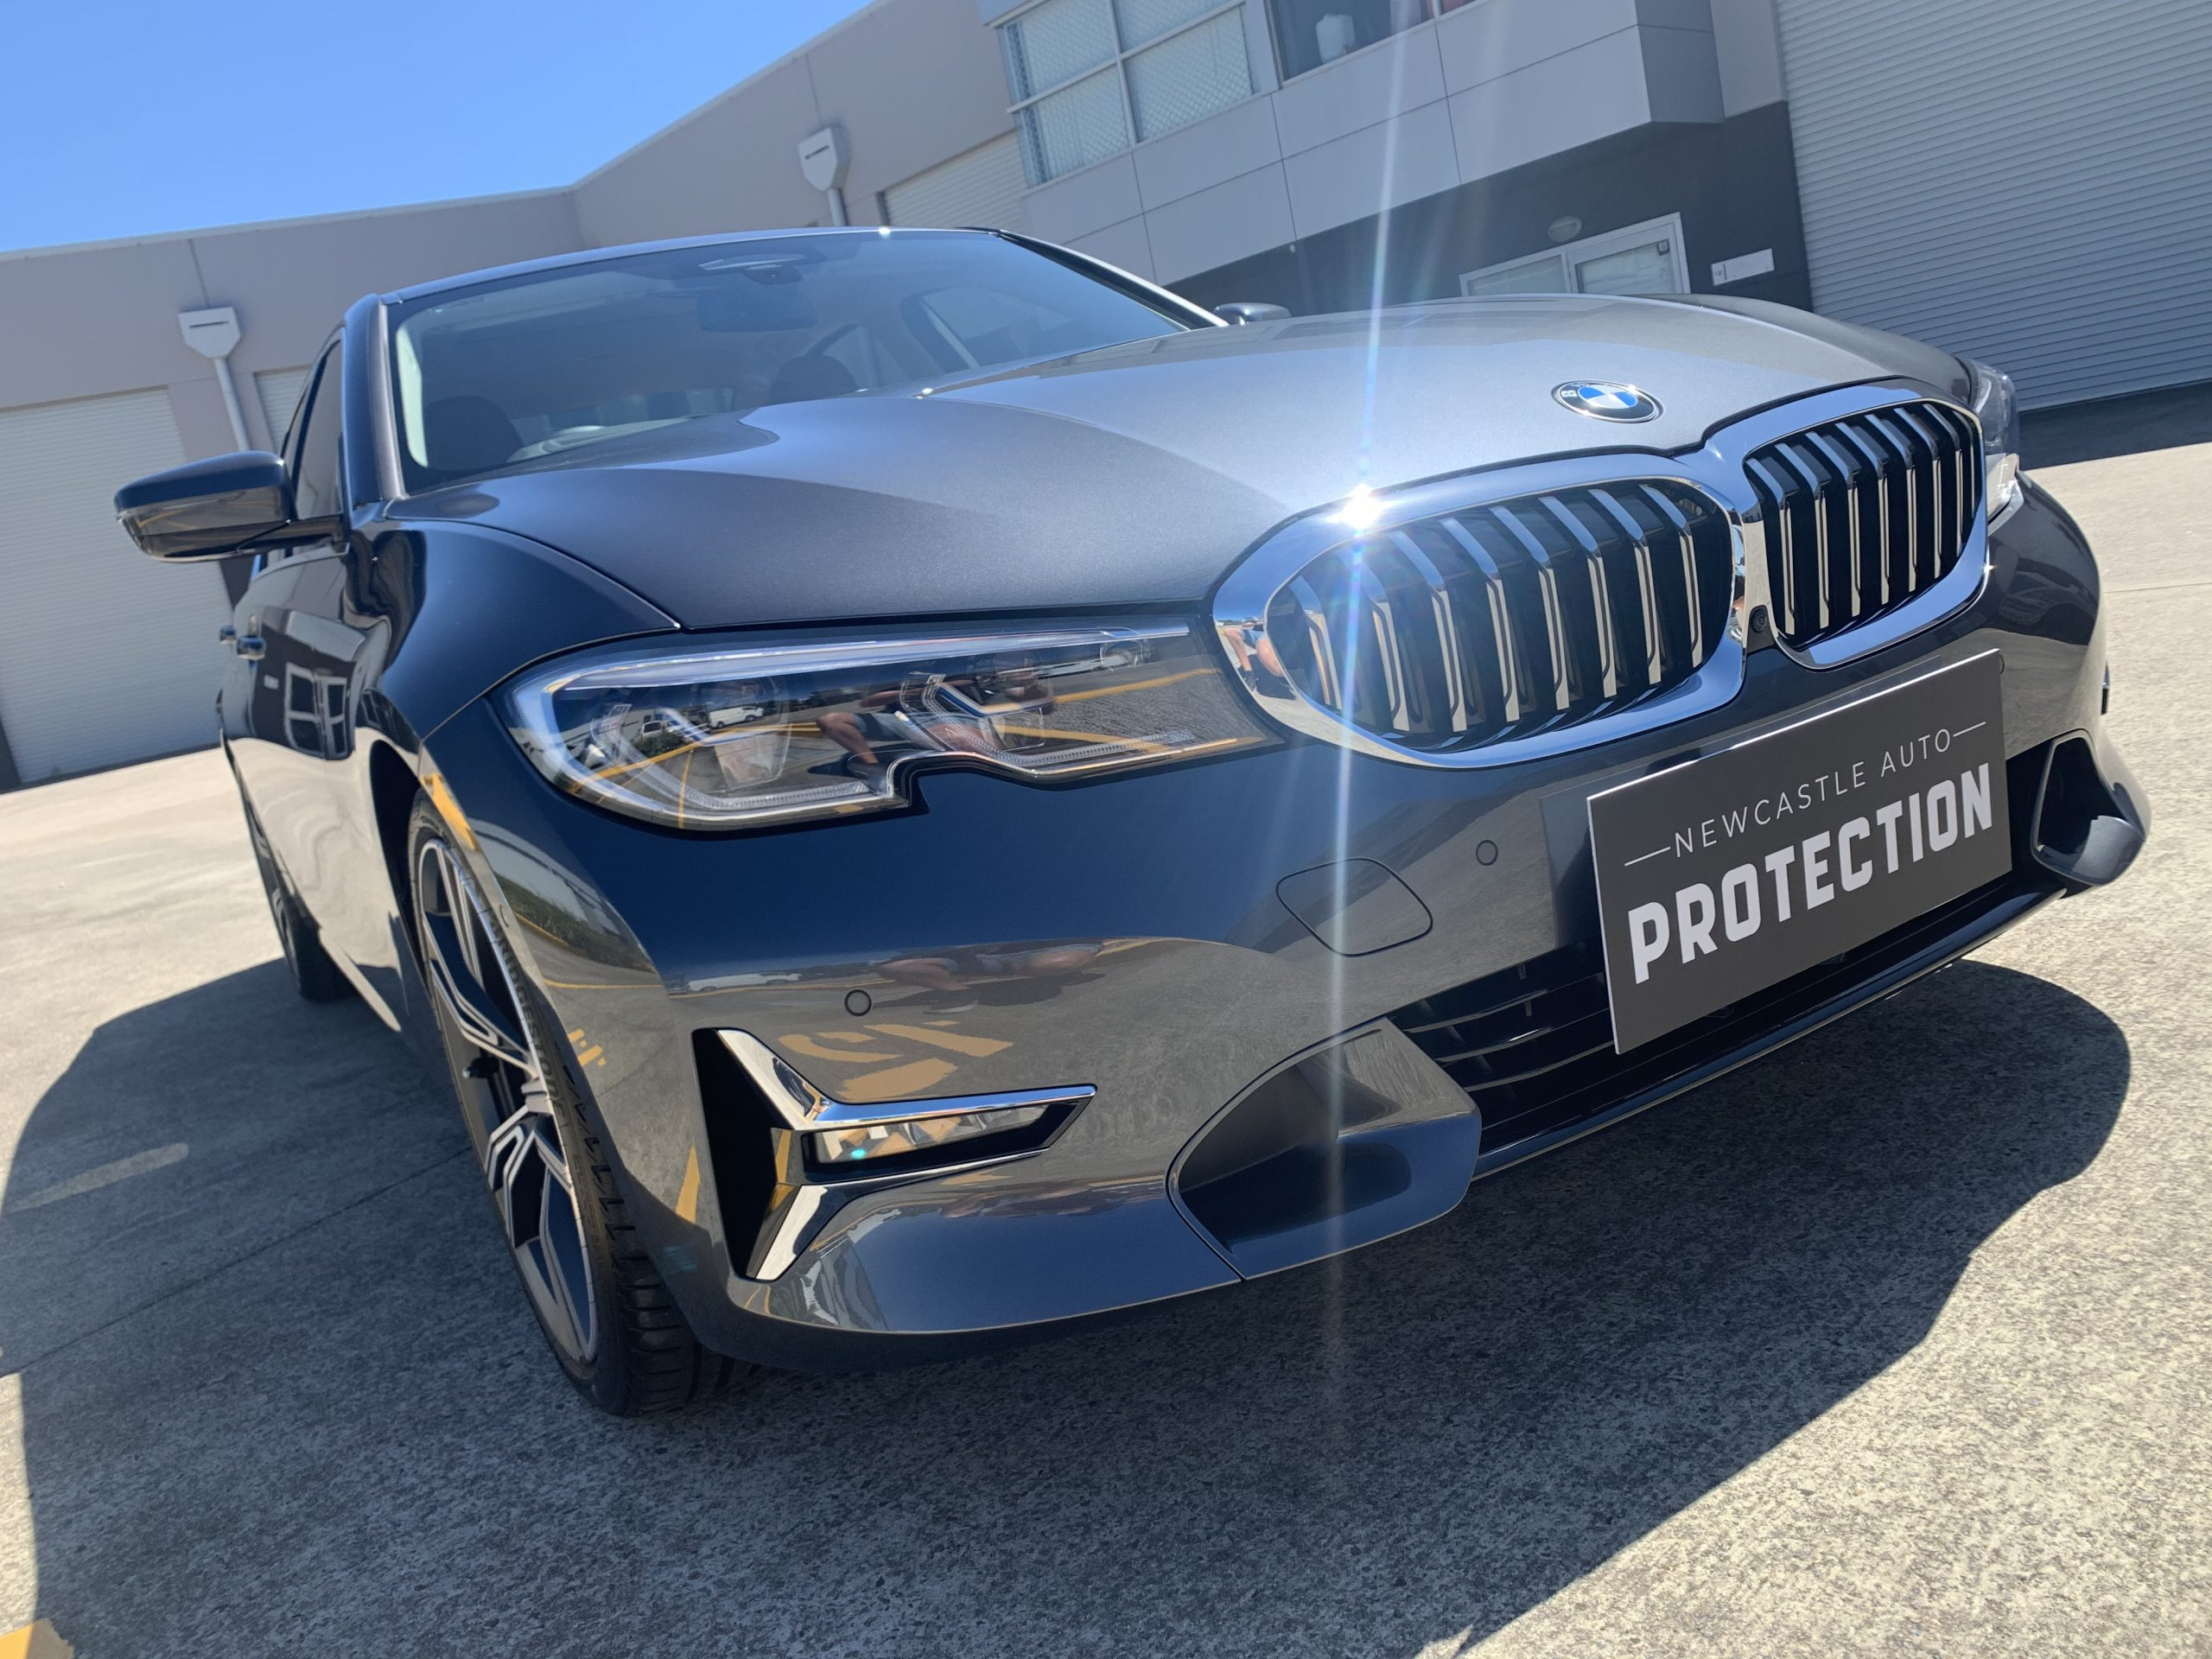 Ceramic Coating Maitland - paint protection on a silver vehicle completed by Newcastle Auto Protection